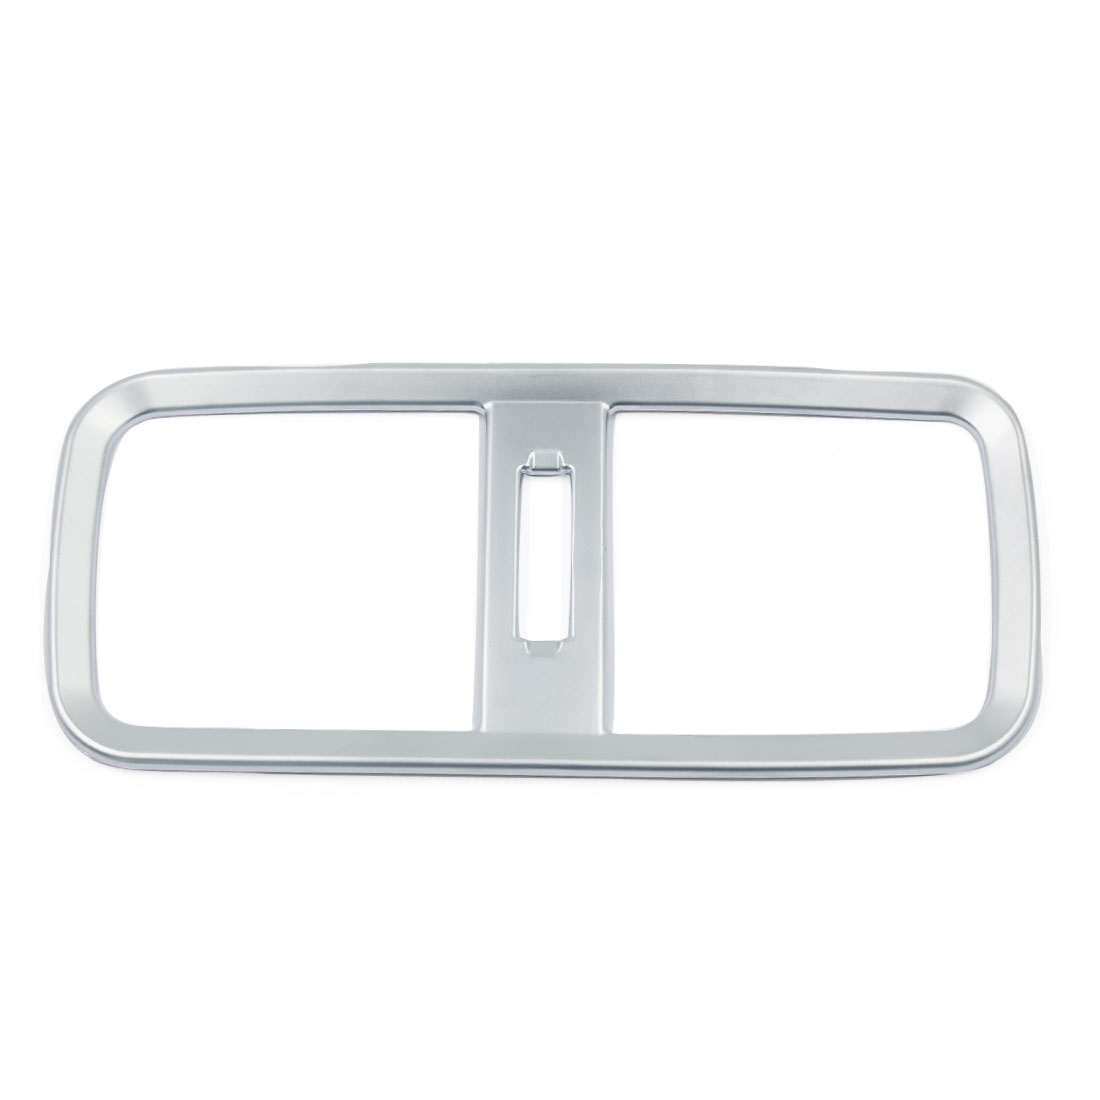 ABS Chrome Rear Air Condition Vents Frame Cover Trim for Honda CRV CR-V 2015